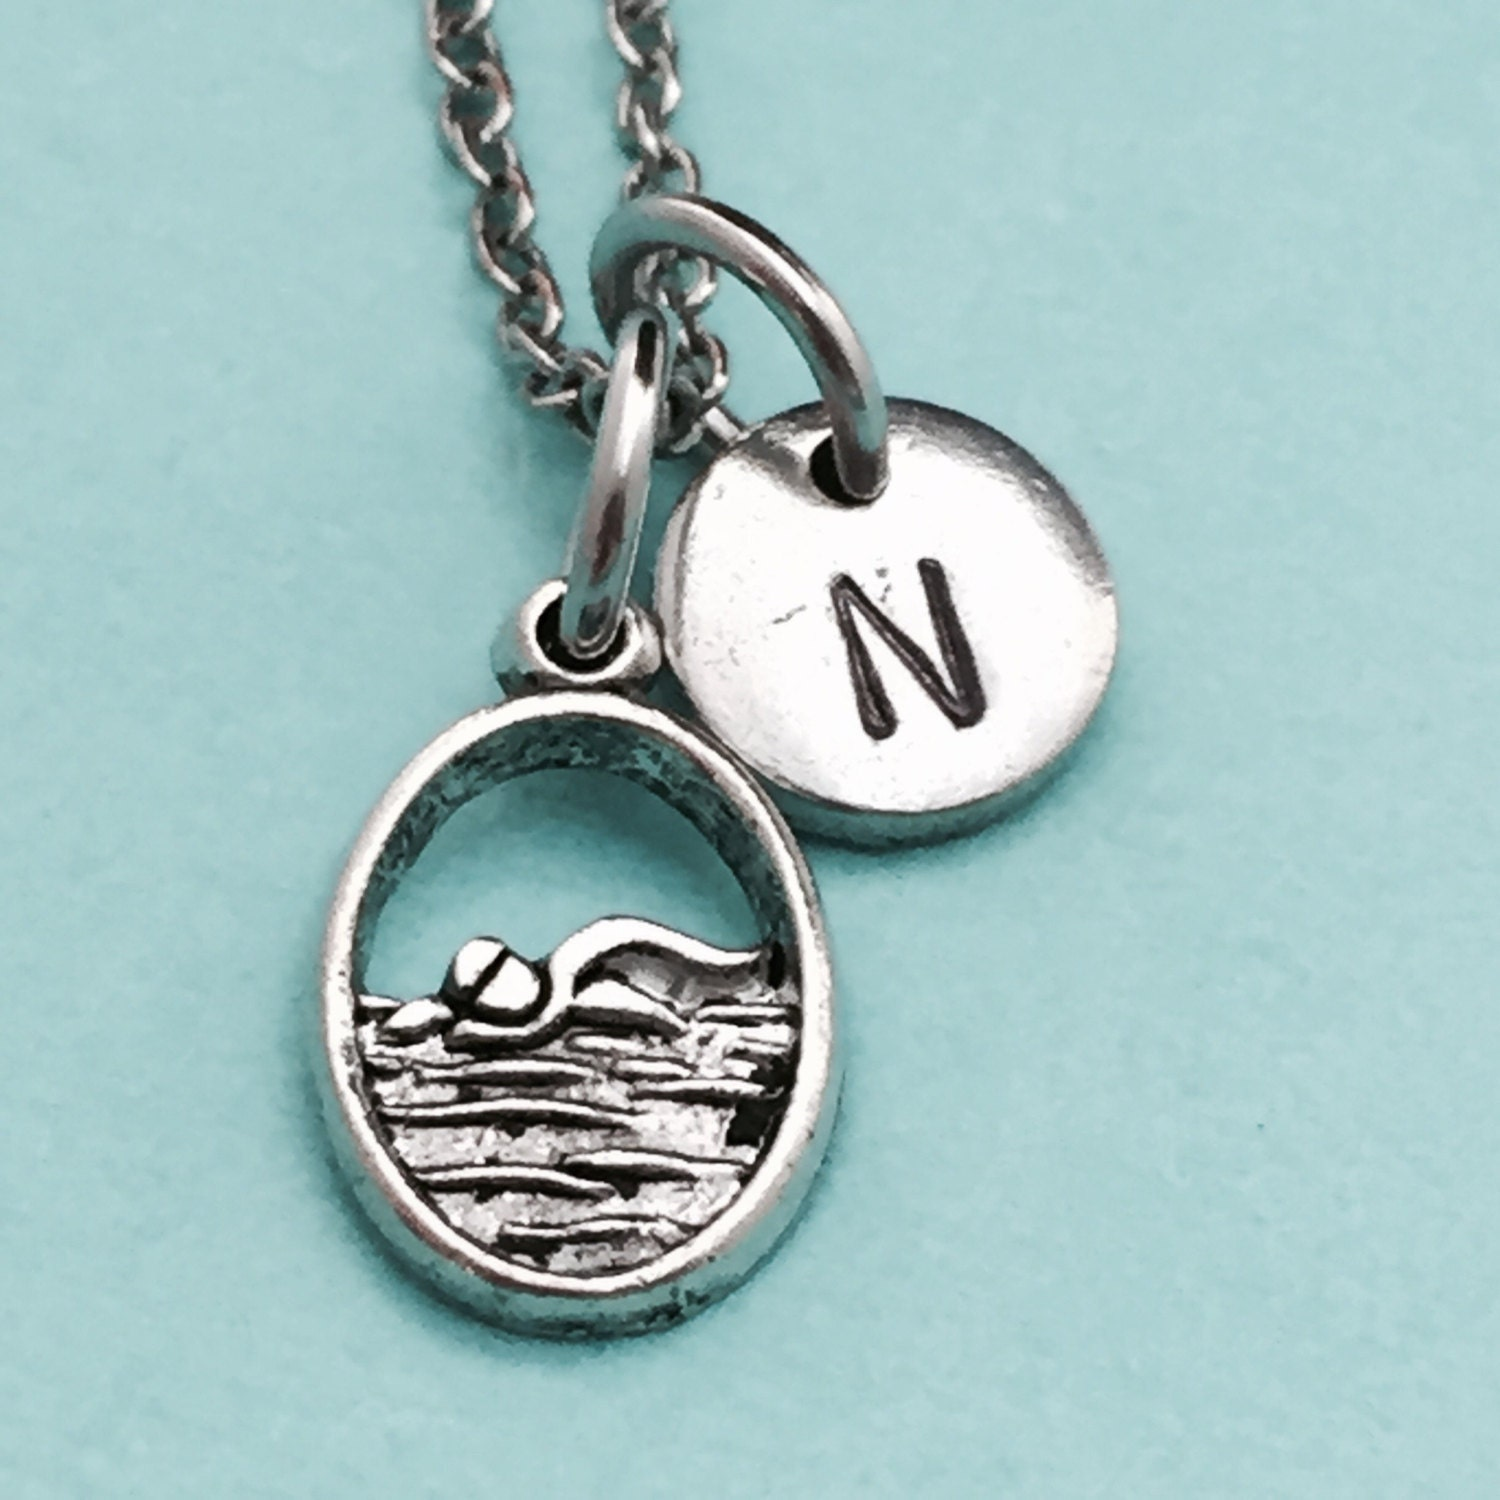 swimmer jewelry swimmer necklace swimmer charm sports necklace personalized 2985